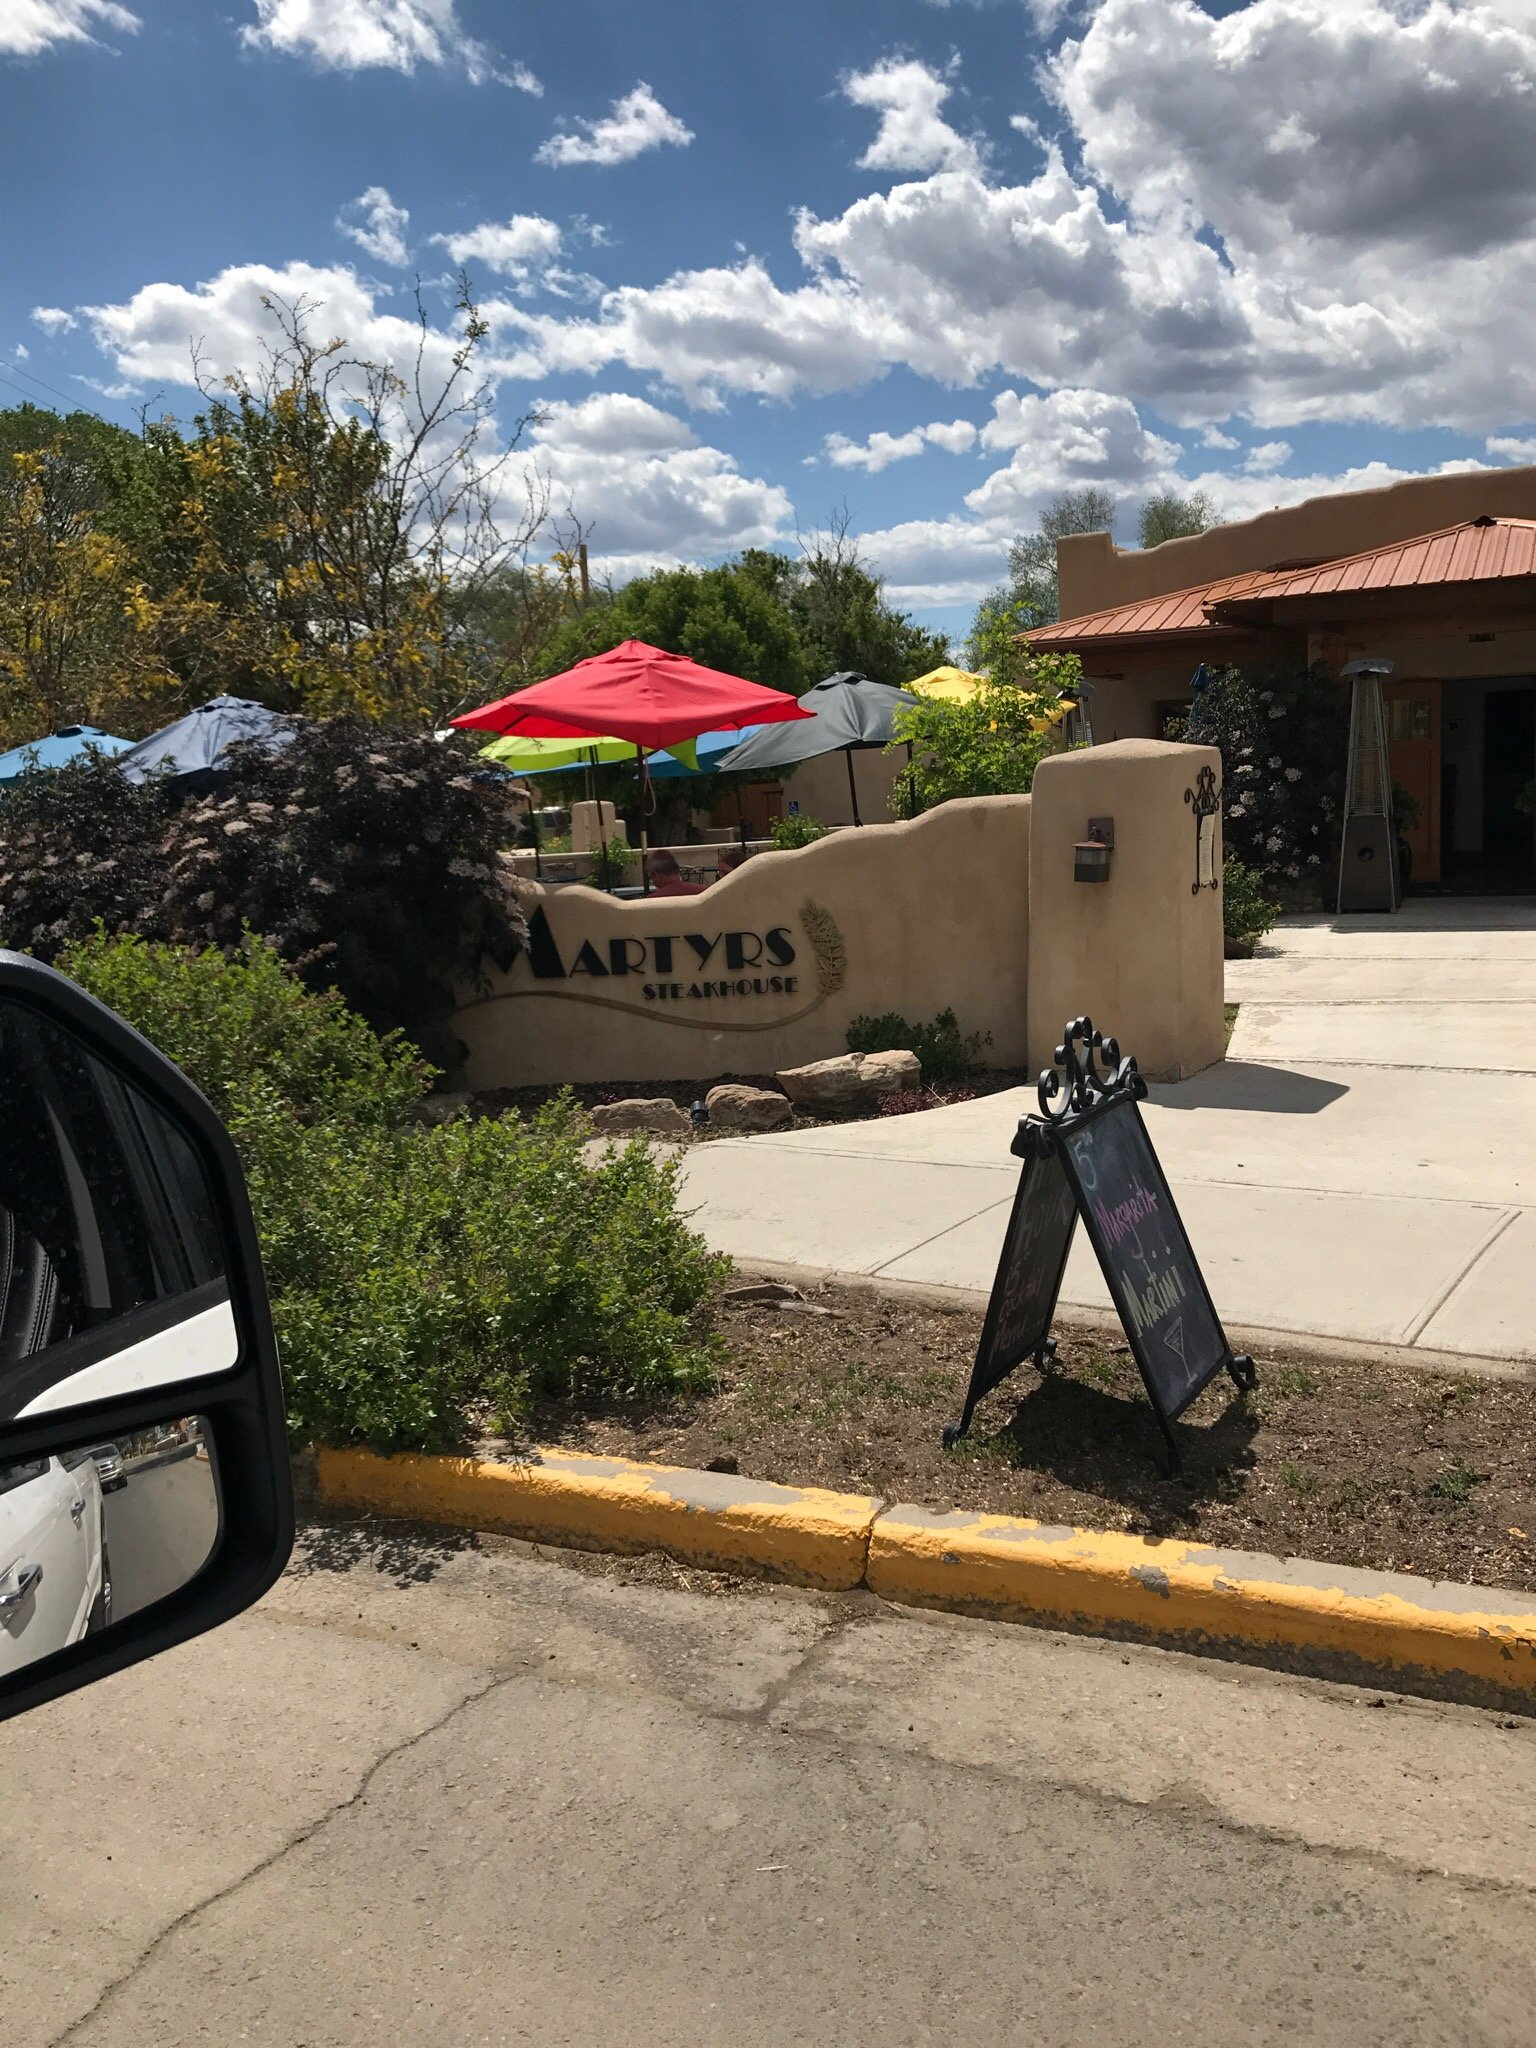 New mexico taos county carson - Martyrs Steakhouse Taos Restaurant Reviews Phone Number Photos Tripadvisor